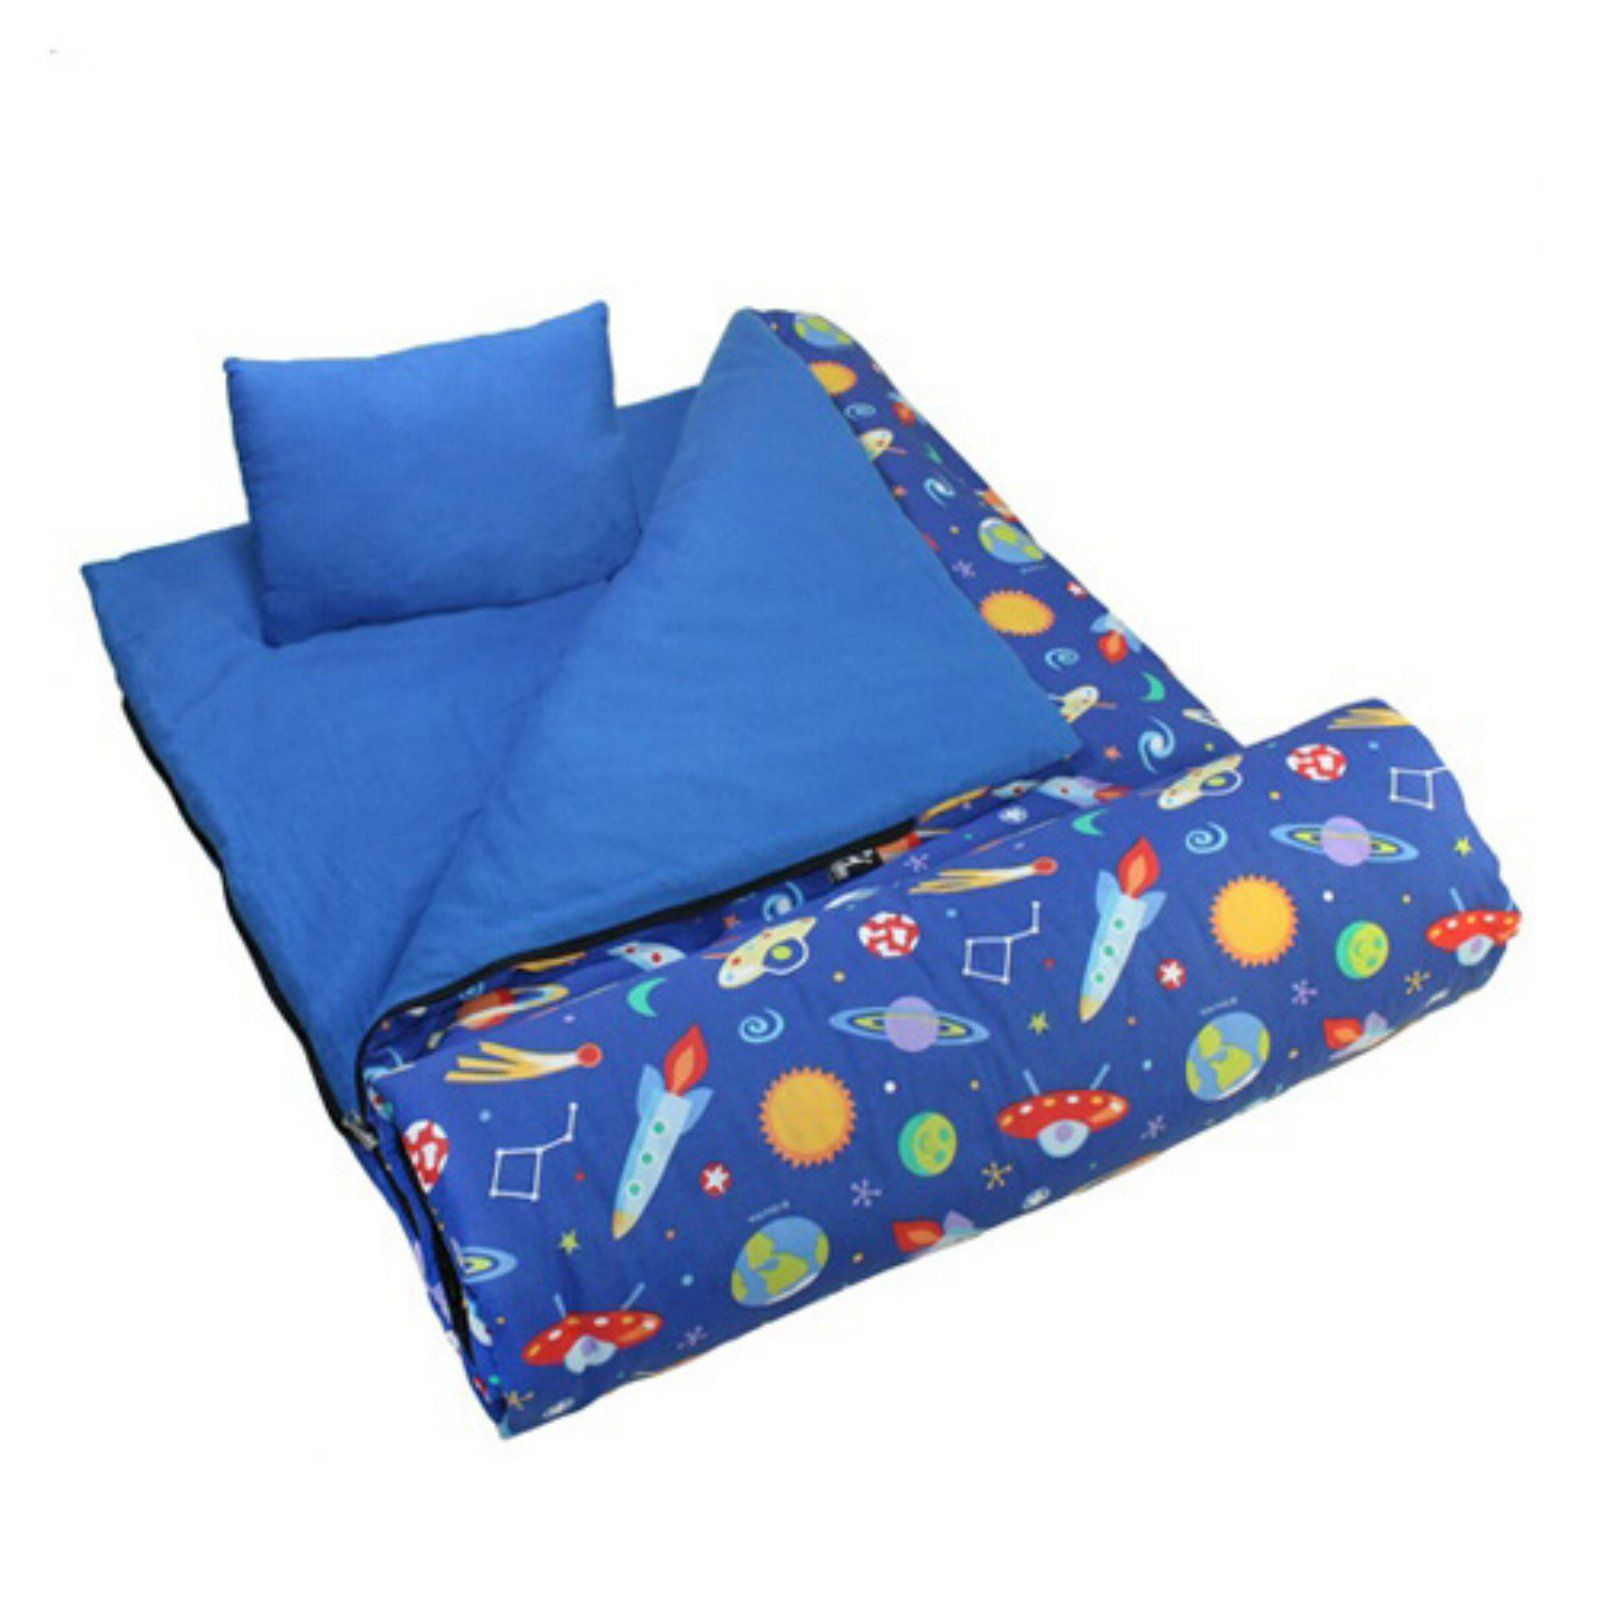 reputable site 1d593 20056 Wildkin Olive Kids Collection Out of This World Sleeping Bag ...